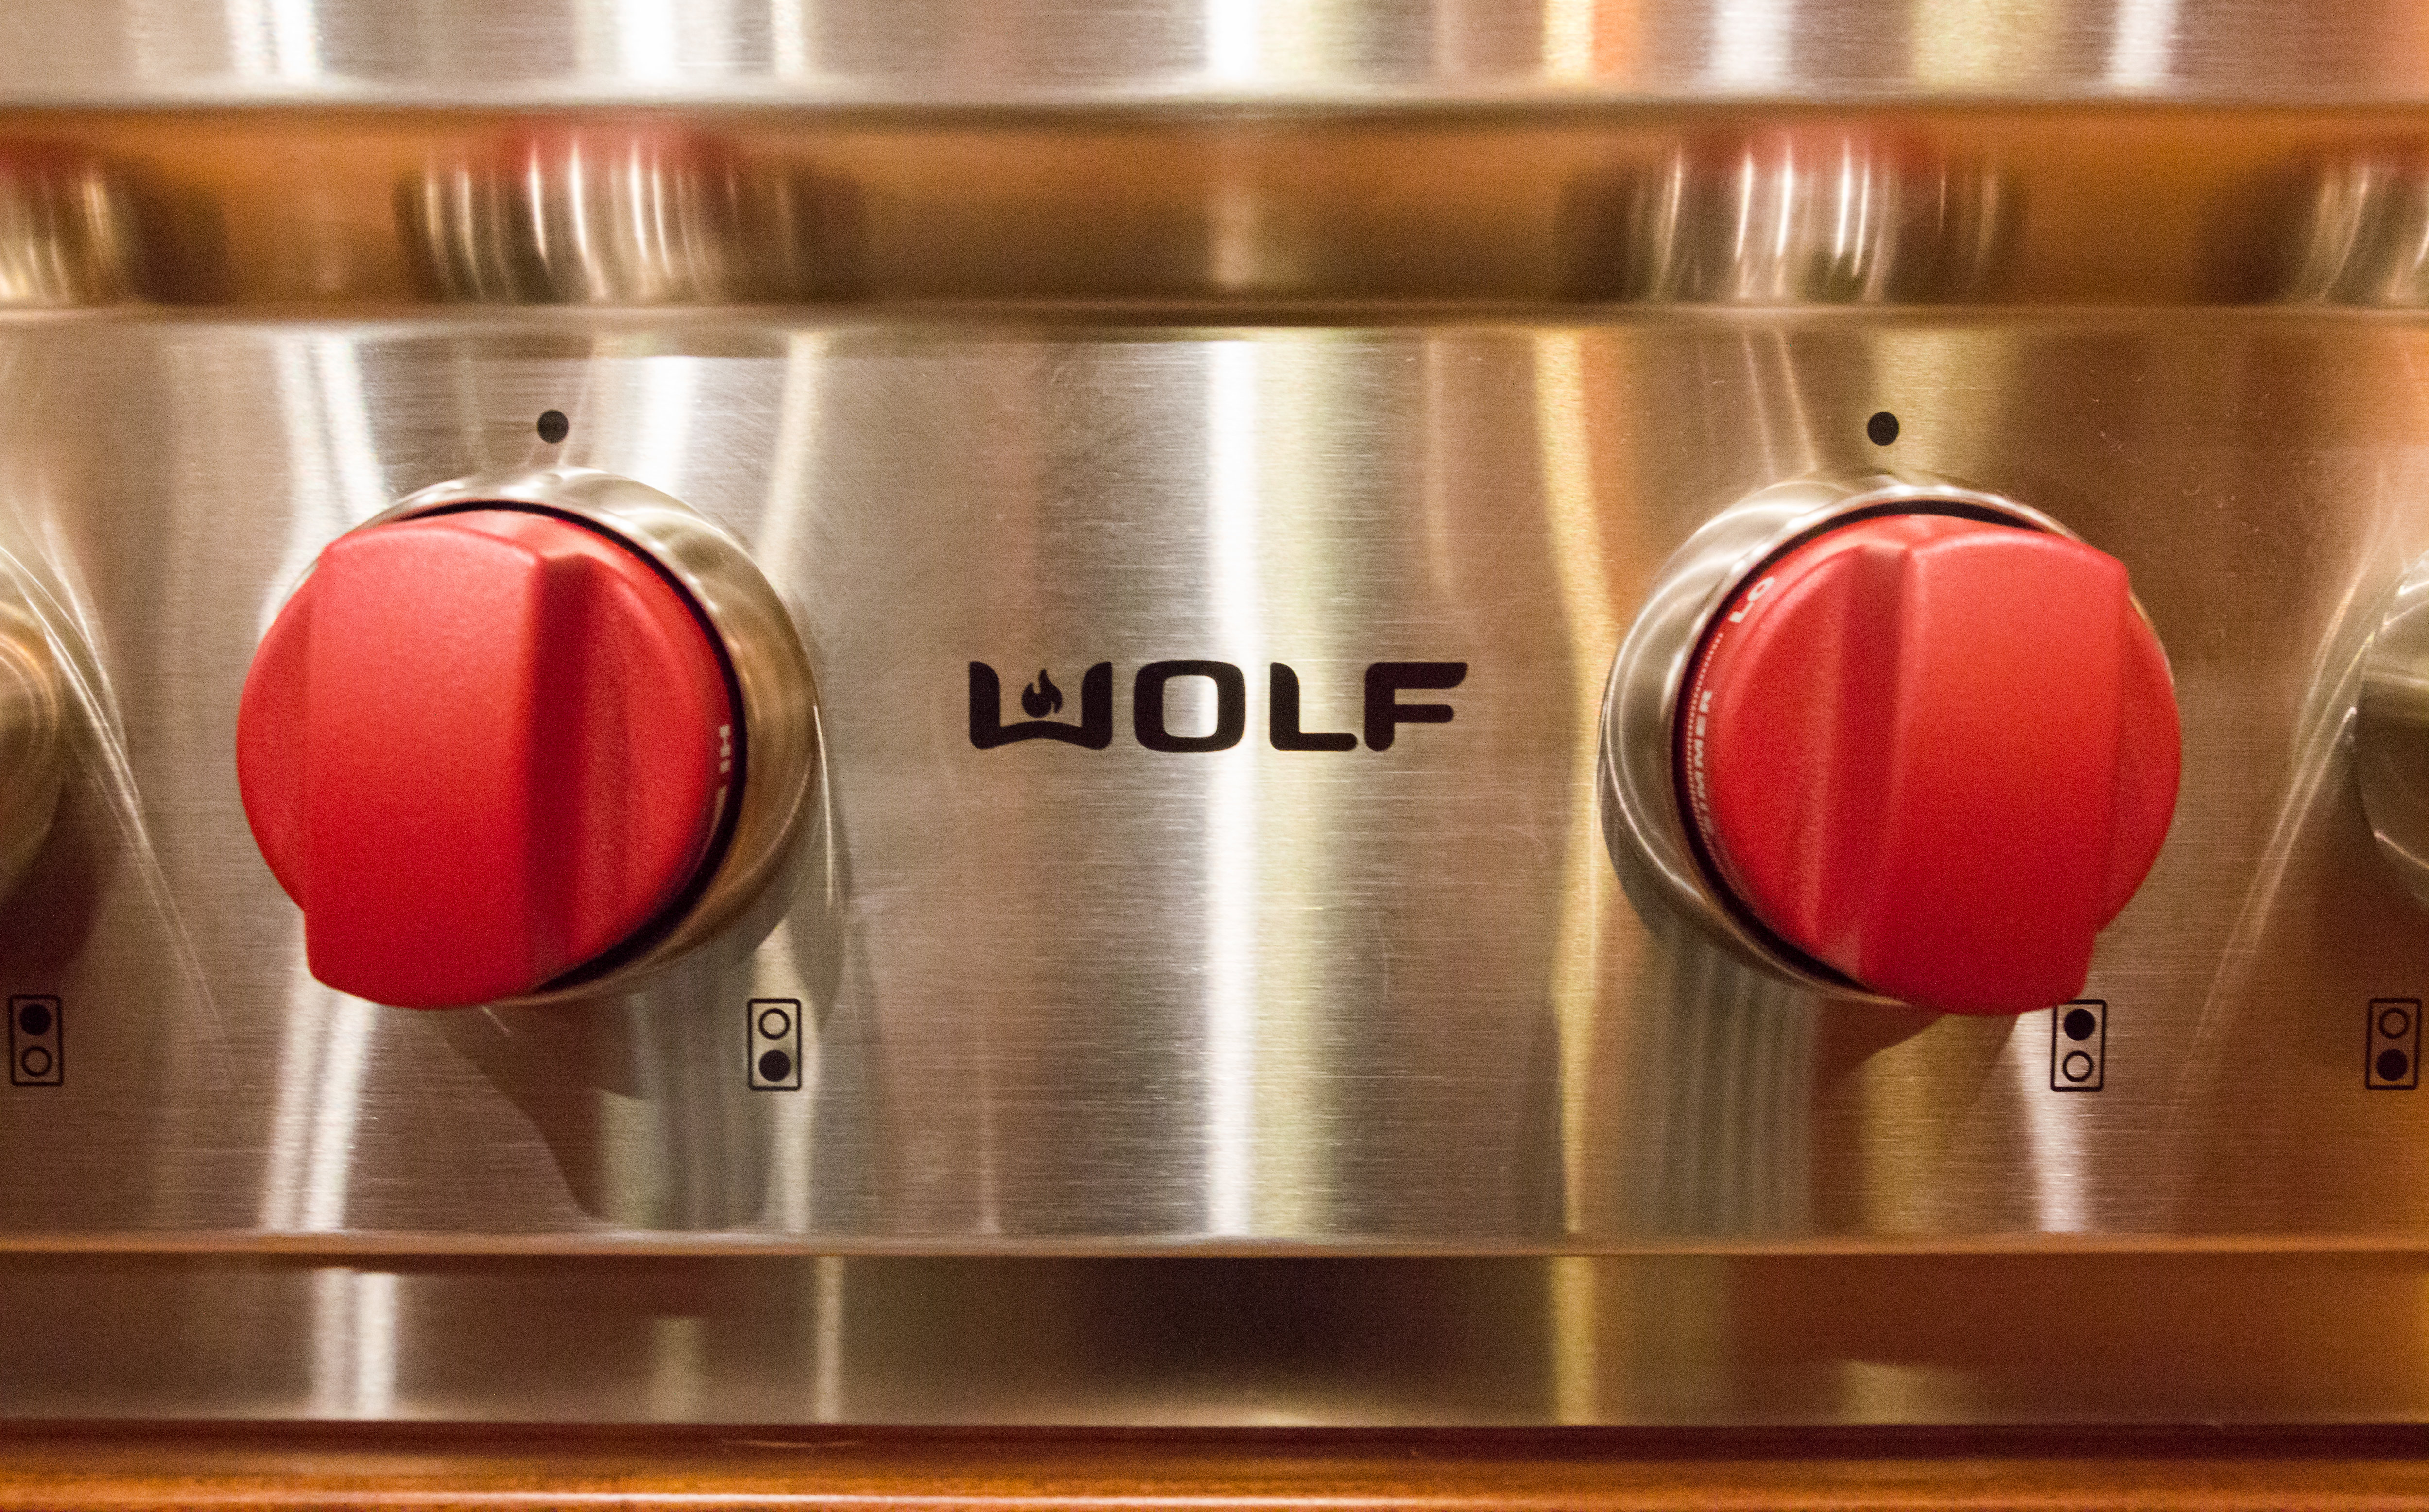 Red control knobs